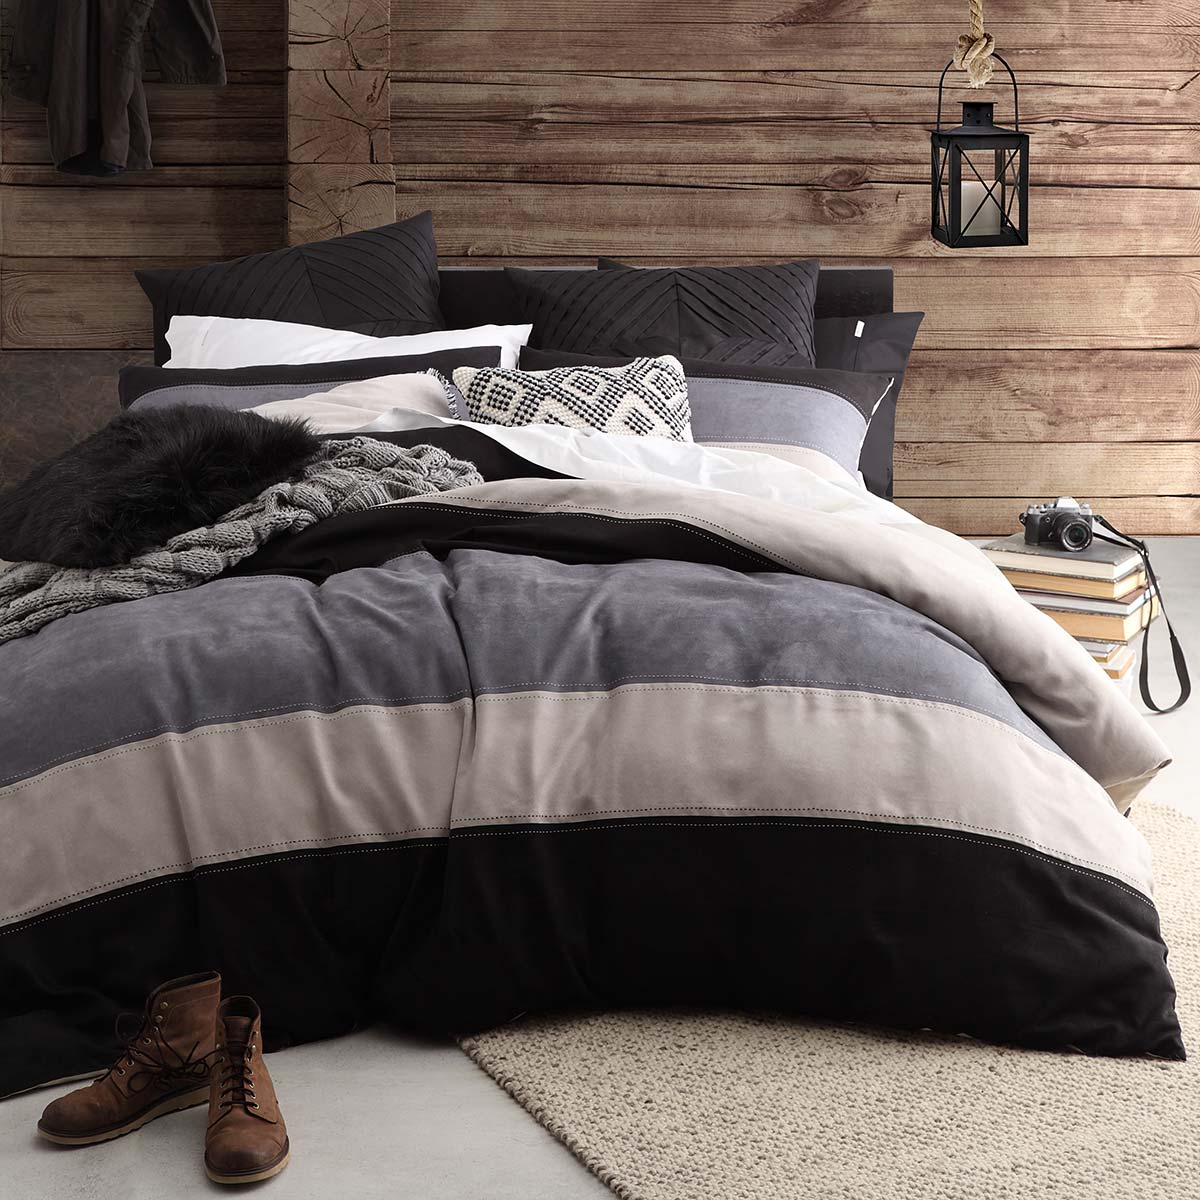 kitchen king dp masie ink cal duvet set ivy amazon white mini comforter piece com home california